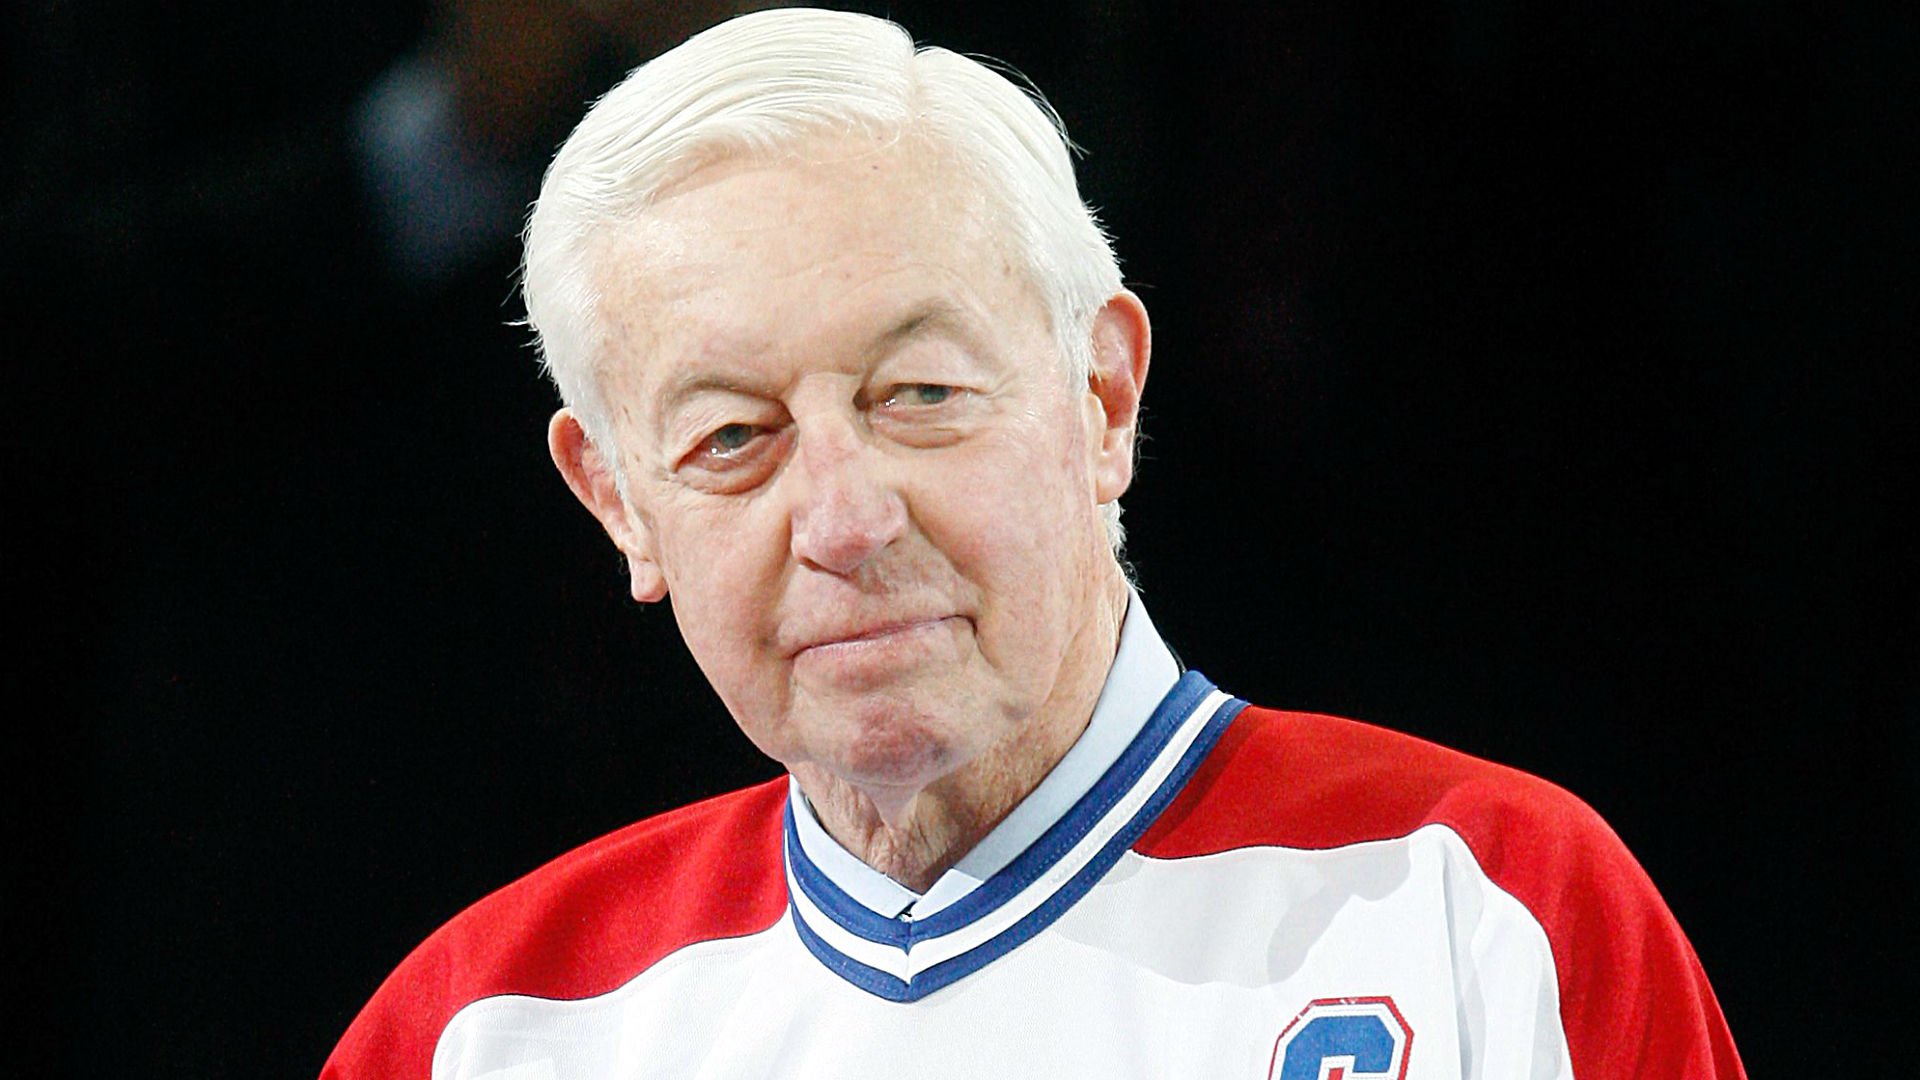 Jean-Beliveau-120214-Getty-FTR.jpg